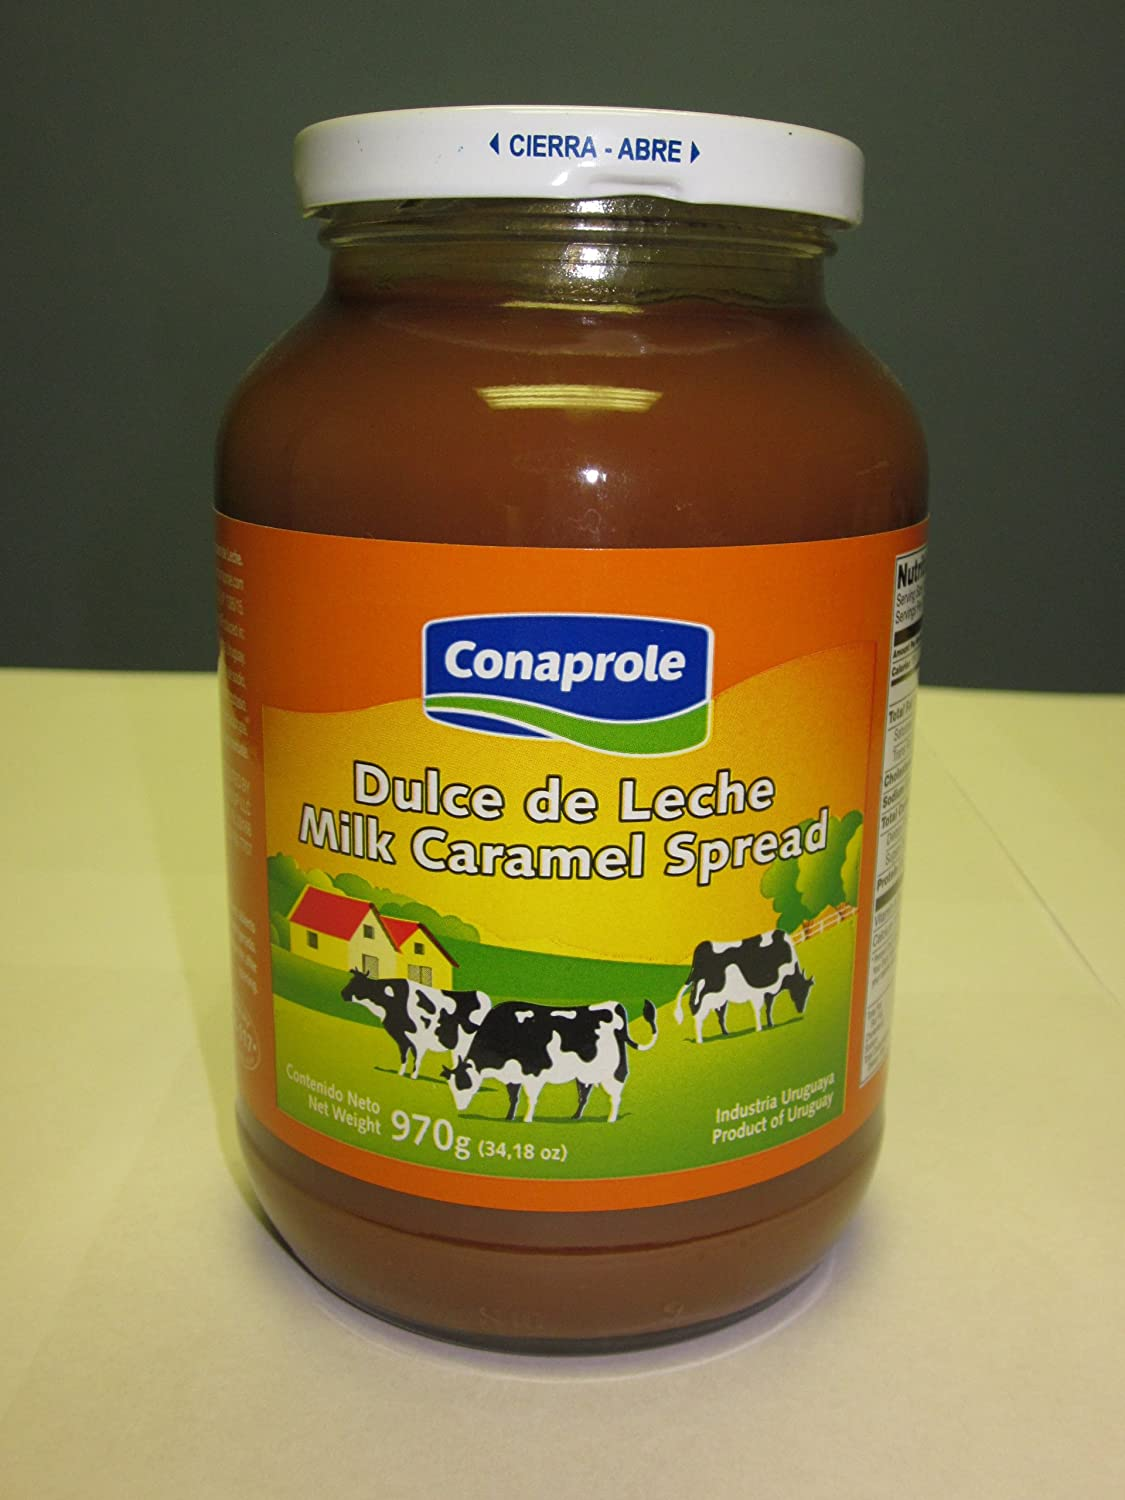 Amazon.com : Conaprole Dulce de Leche 940gr 3 Pack : Grocery & Gourmet Food